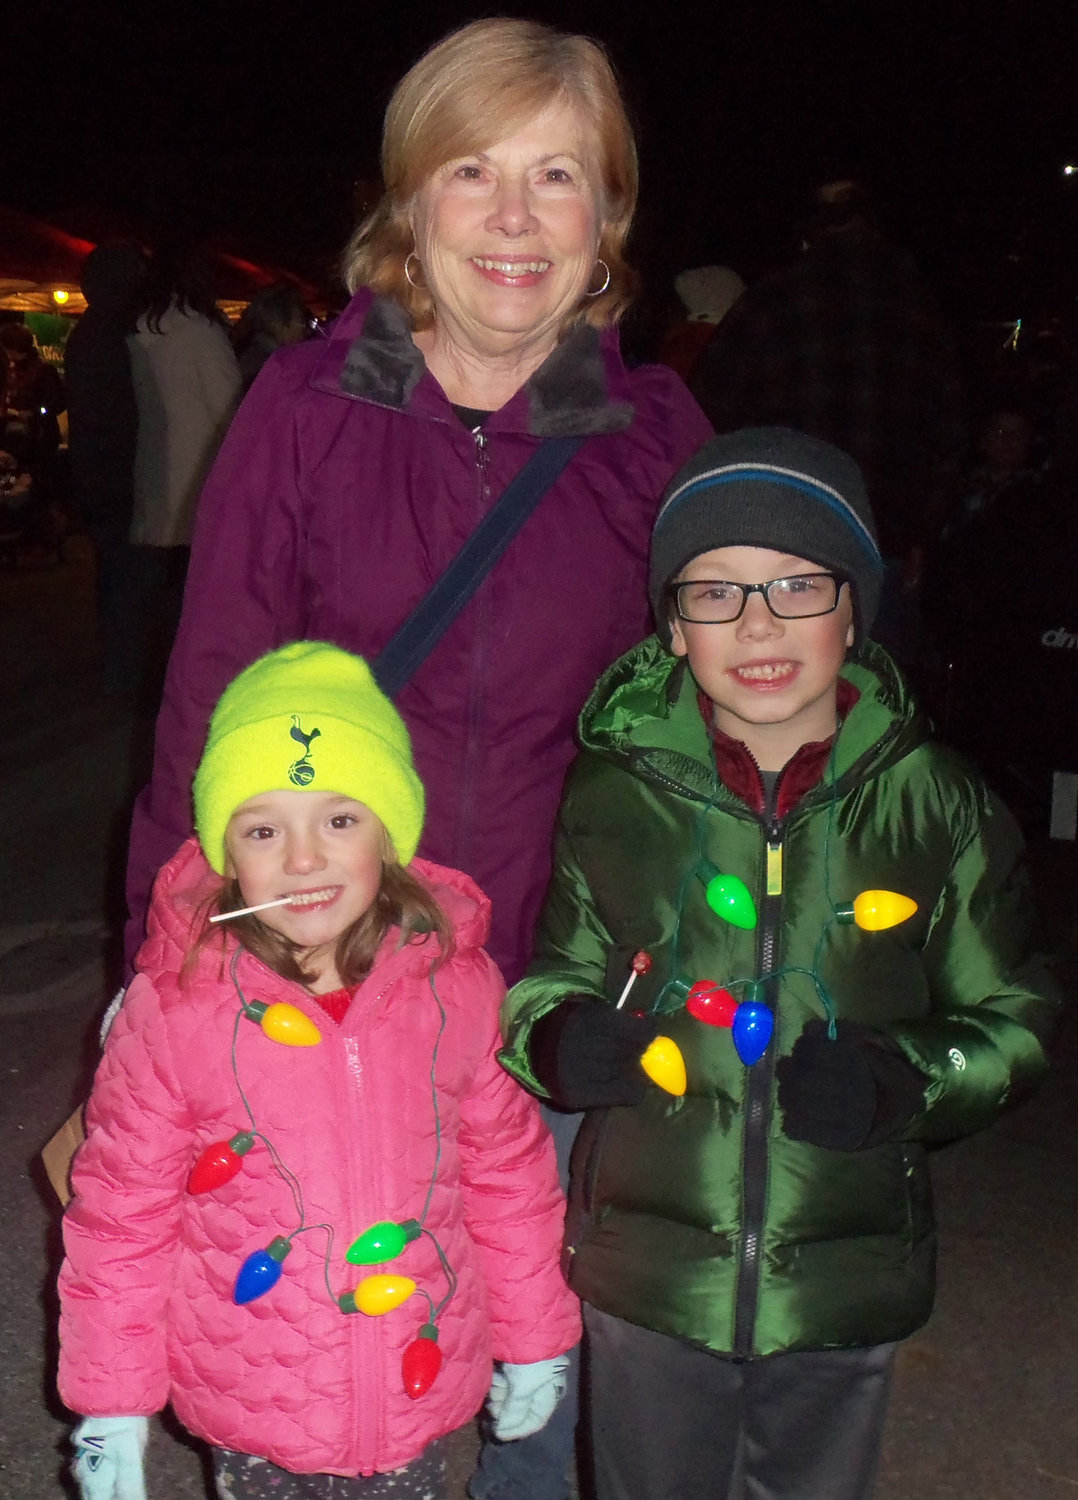 Dianne Billy, center, donated this year's borough Christmas tree from the yard of her Lower Swatara Township home. She is joined by grandchildren Fiona Billy, left, and Corsair Billy, at Middletown's tree-lighting on Saturday, Nov. 30.